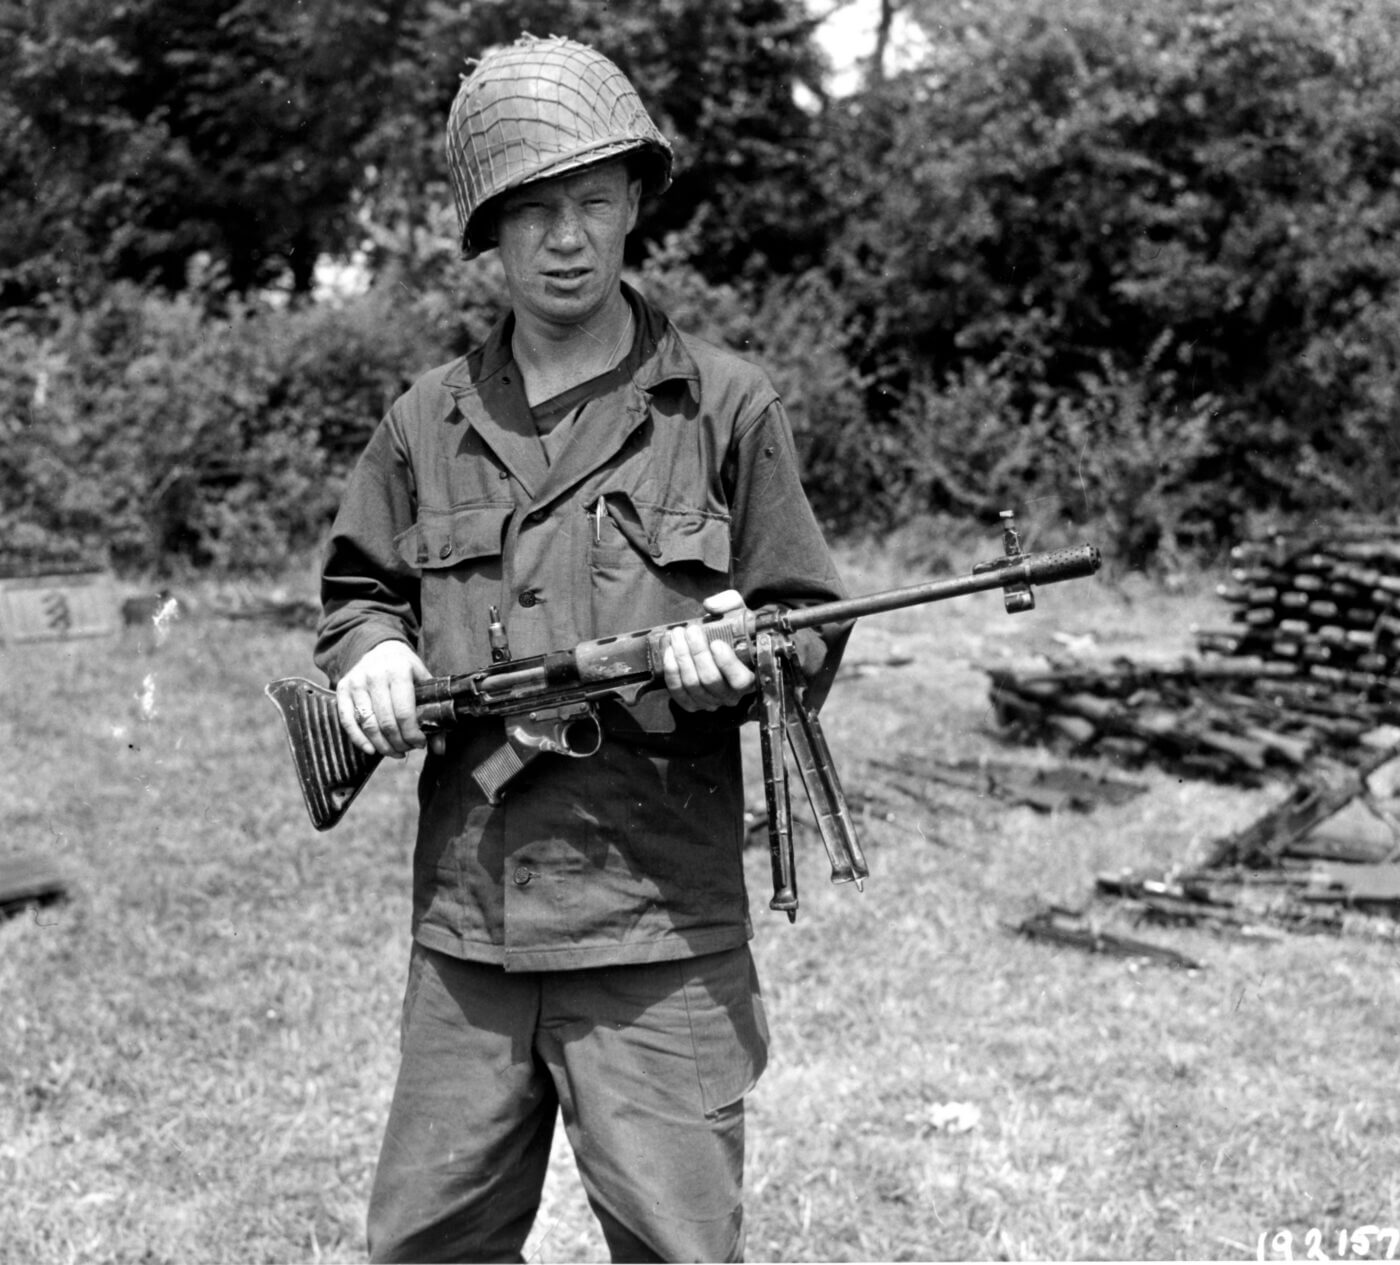 GI with FG42 at St. Lo